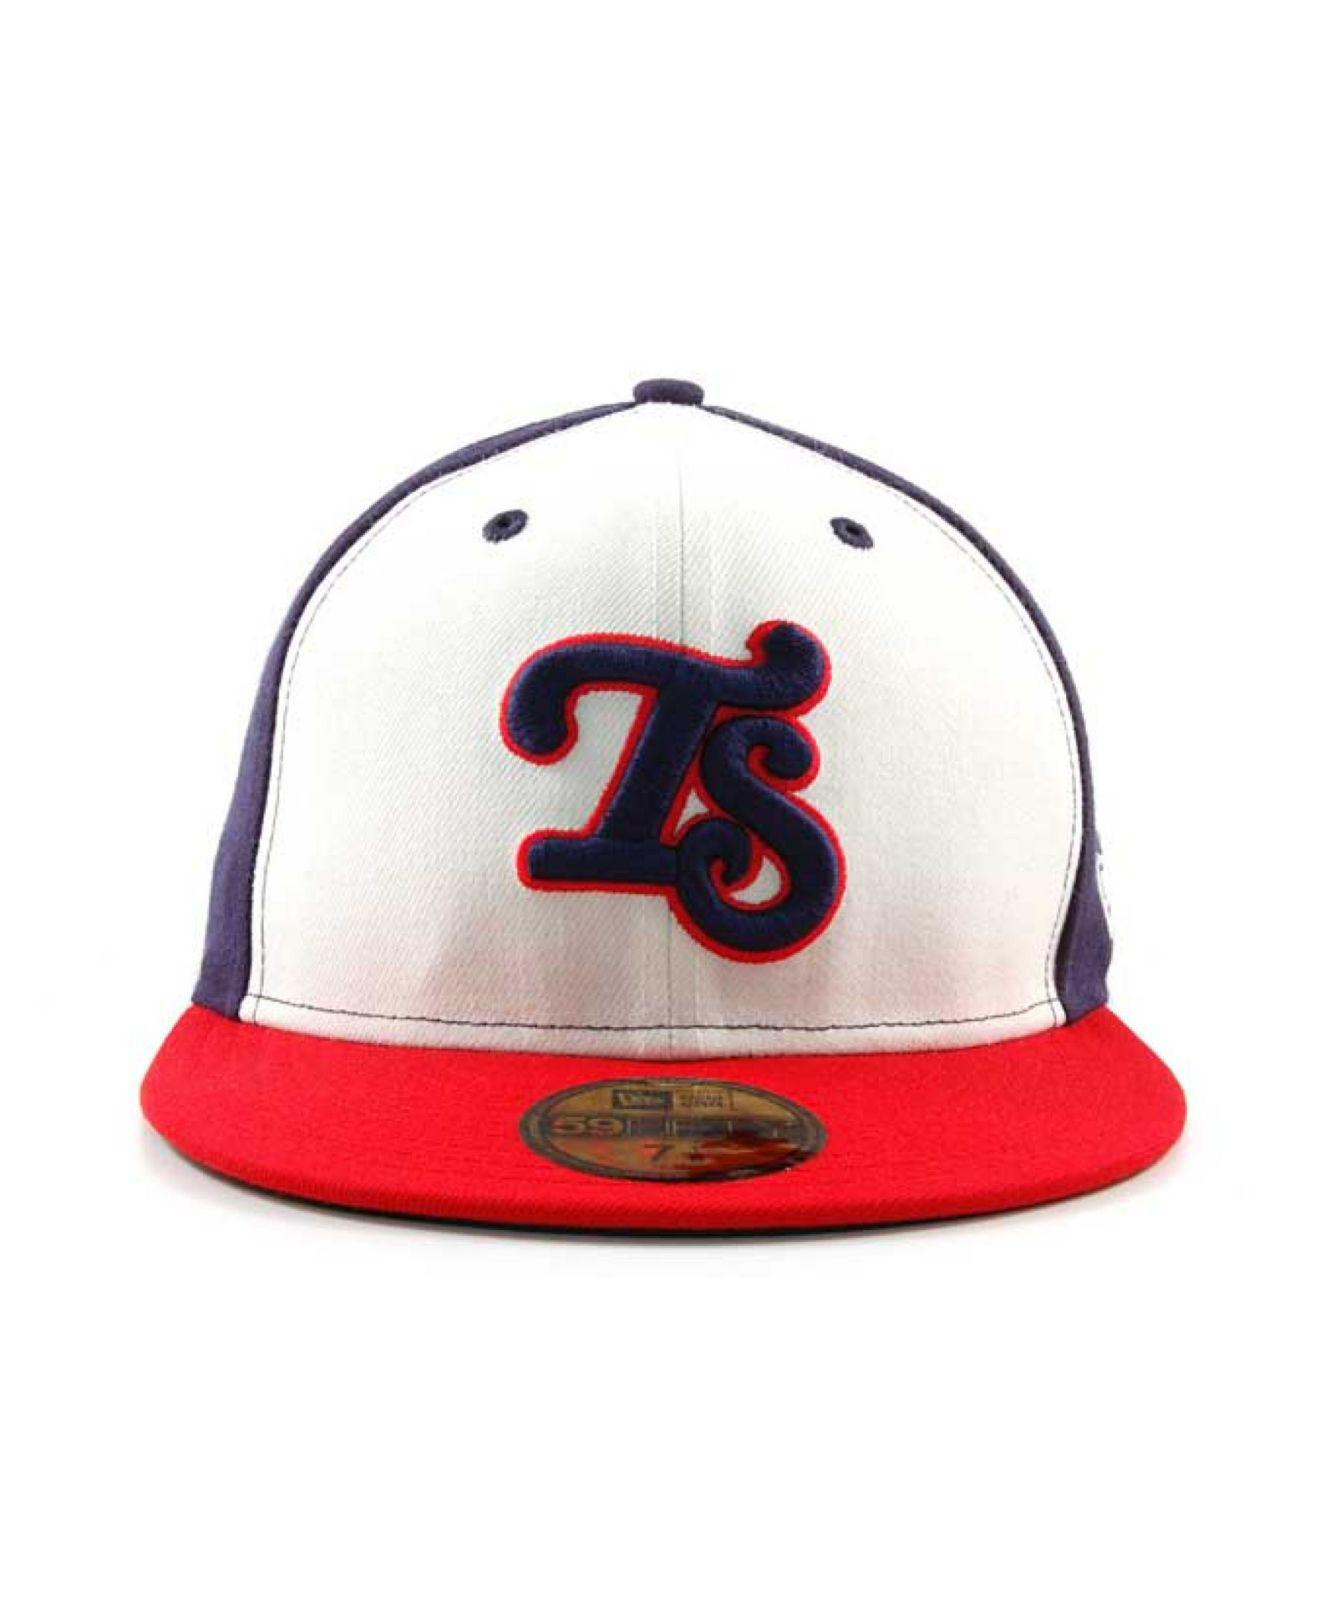 reputable site 0a9f1 0491c ... czech lyst ktz tennessee smokies milb 59fifty cap in white for men  60644 f328b